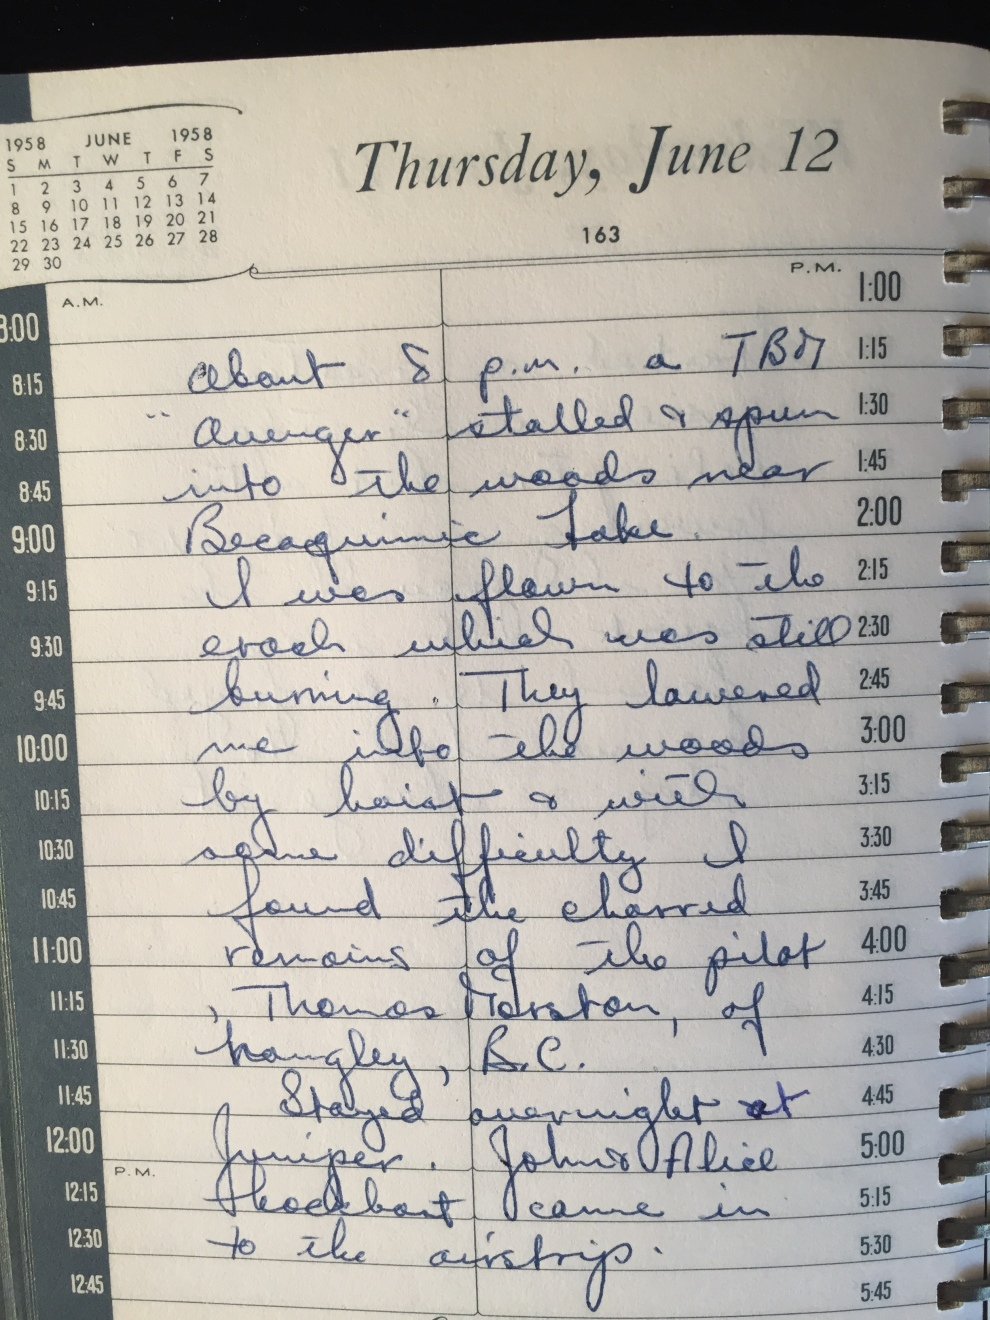 tbm-crash-diary-entry_12jun1958_edreynoldsimg_0279